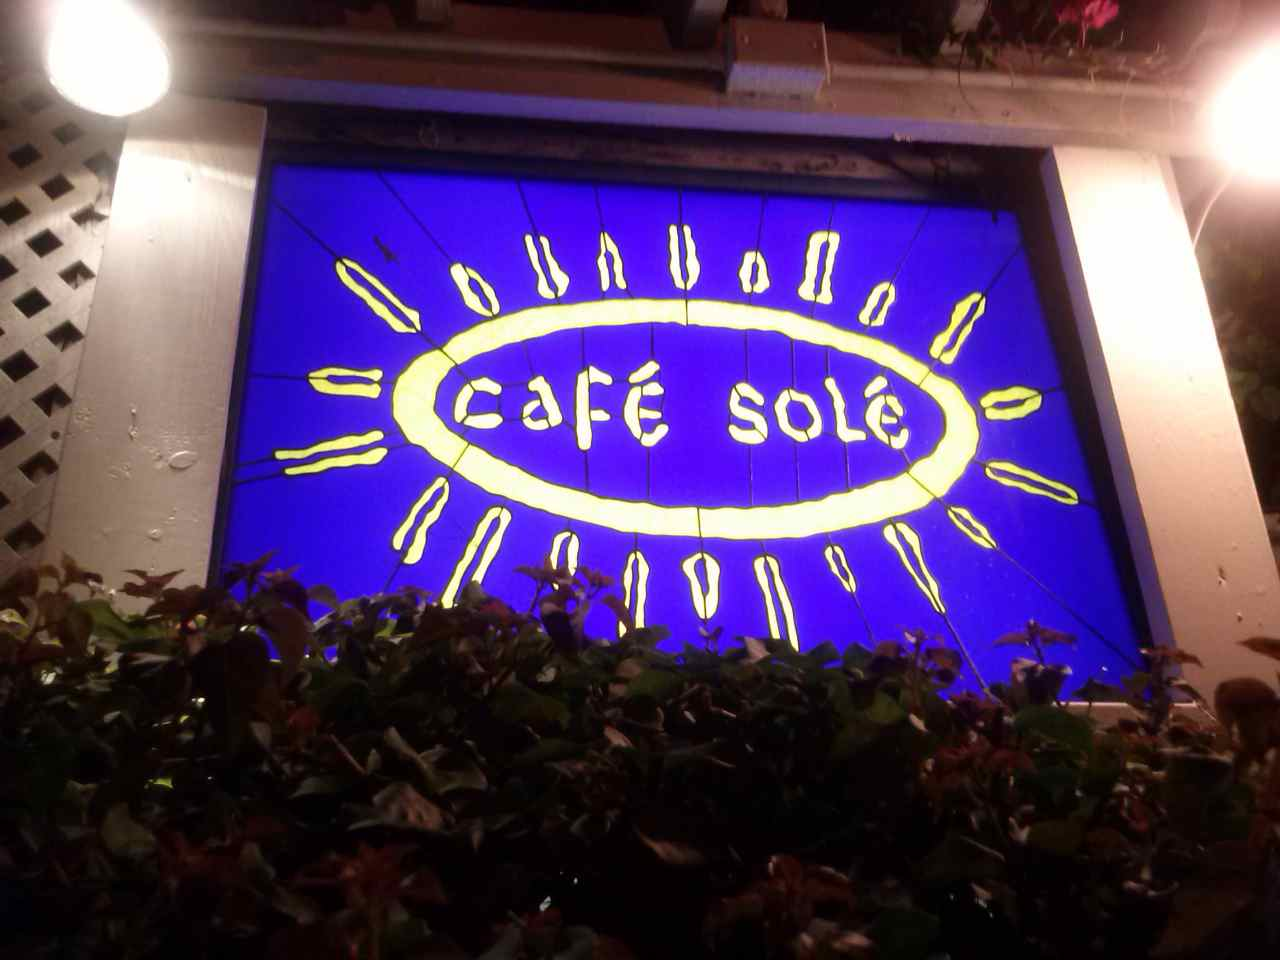 Café Solé en Key West. The Keys, Florida